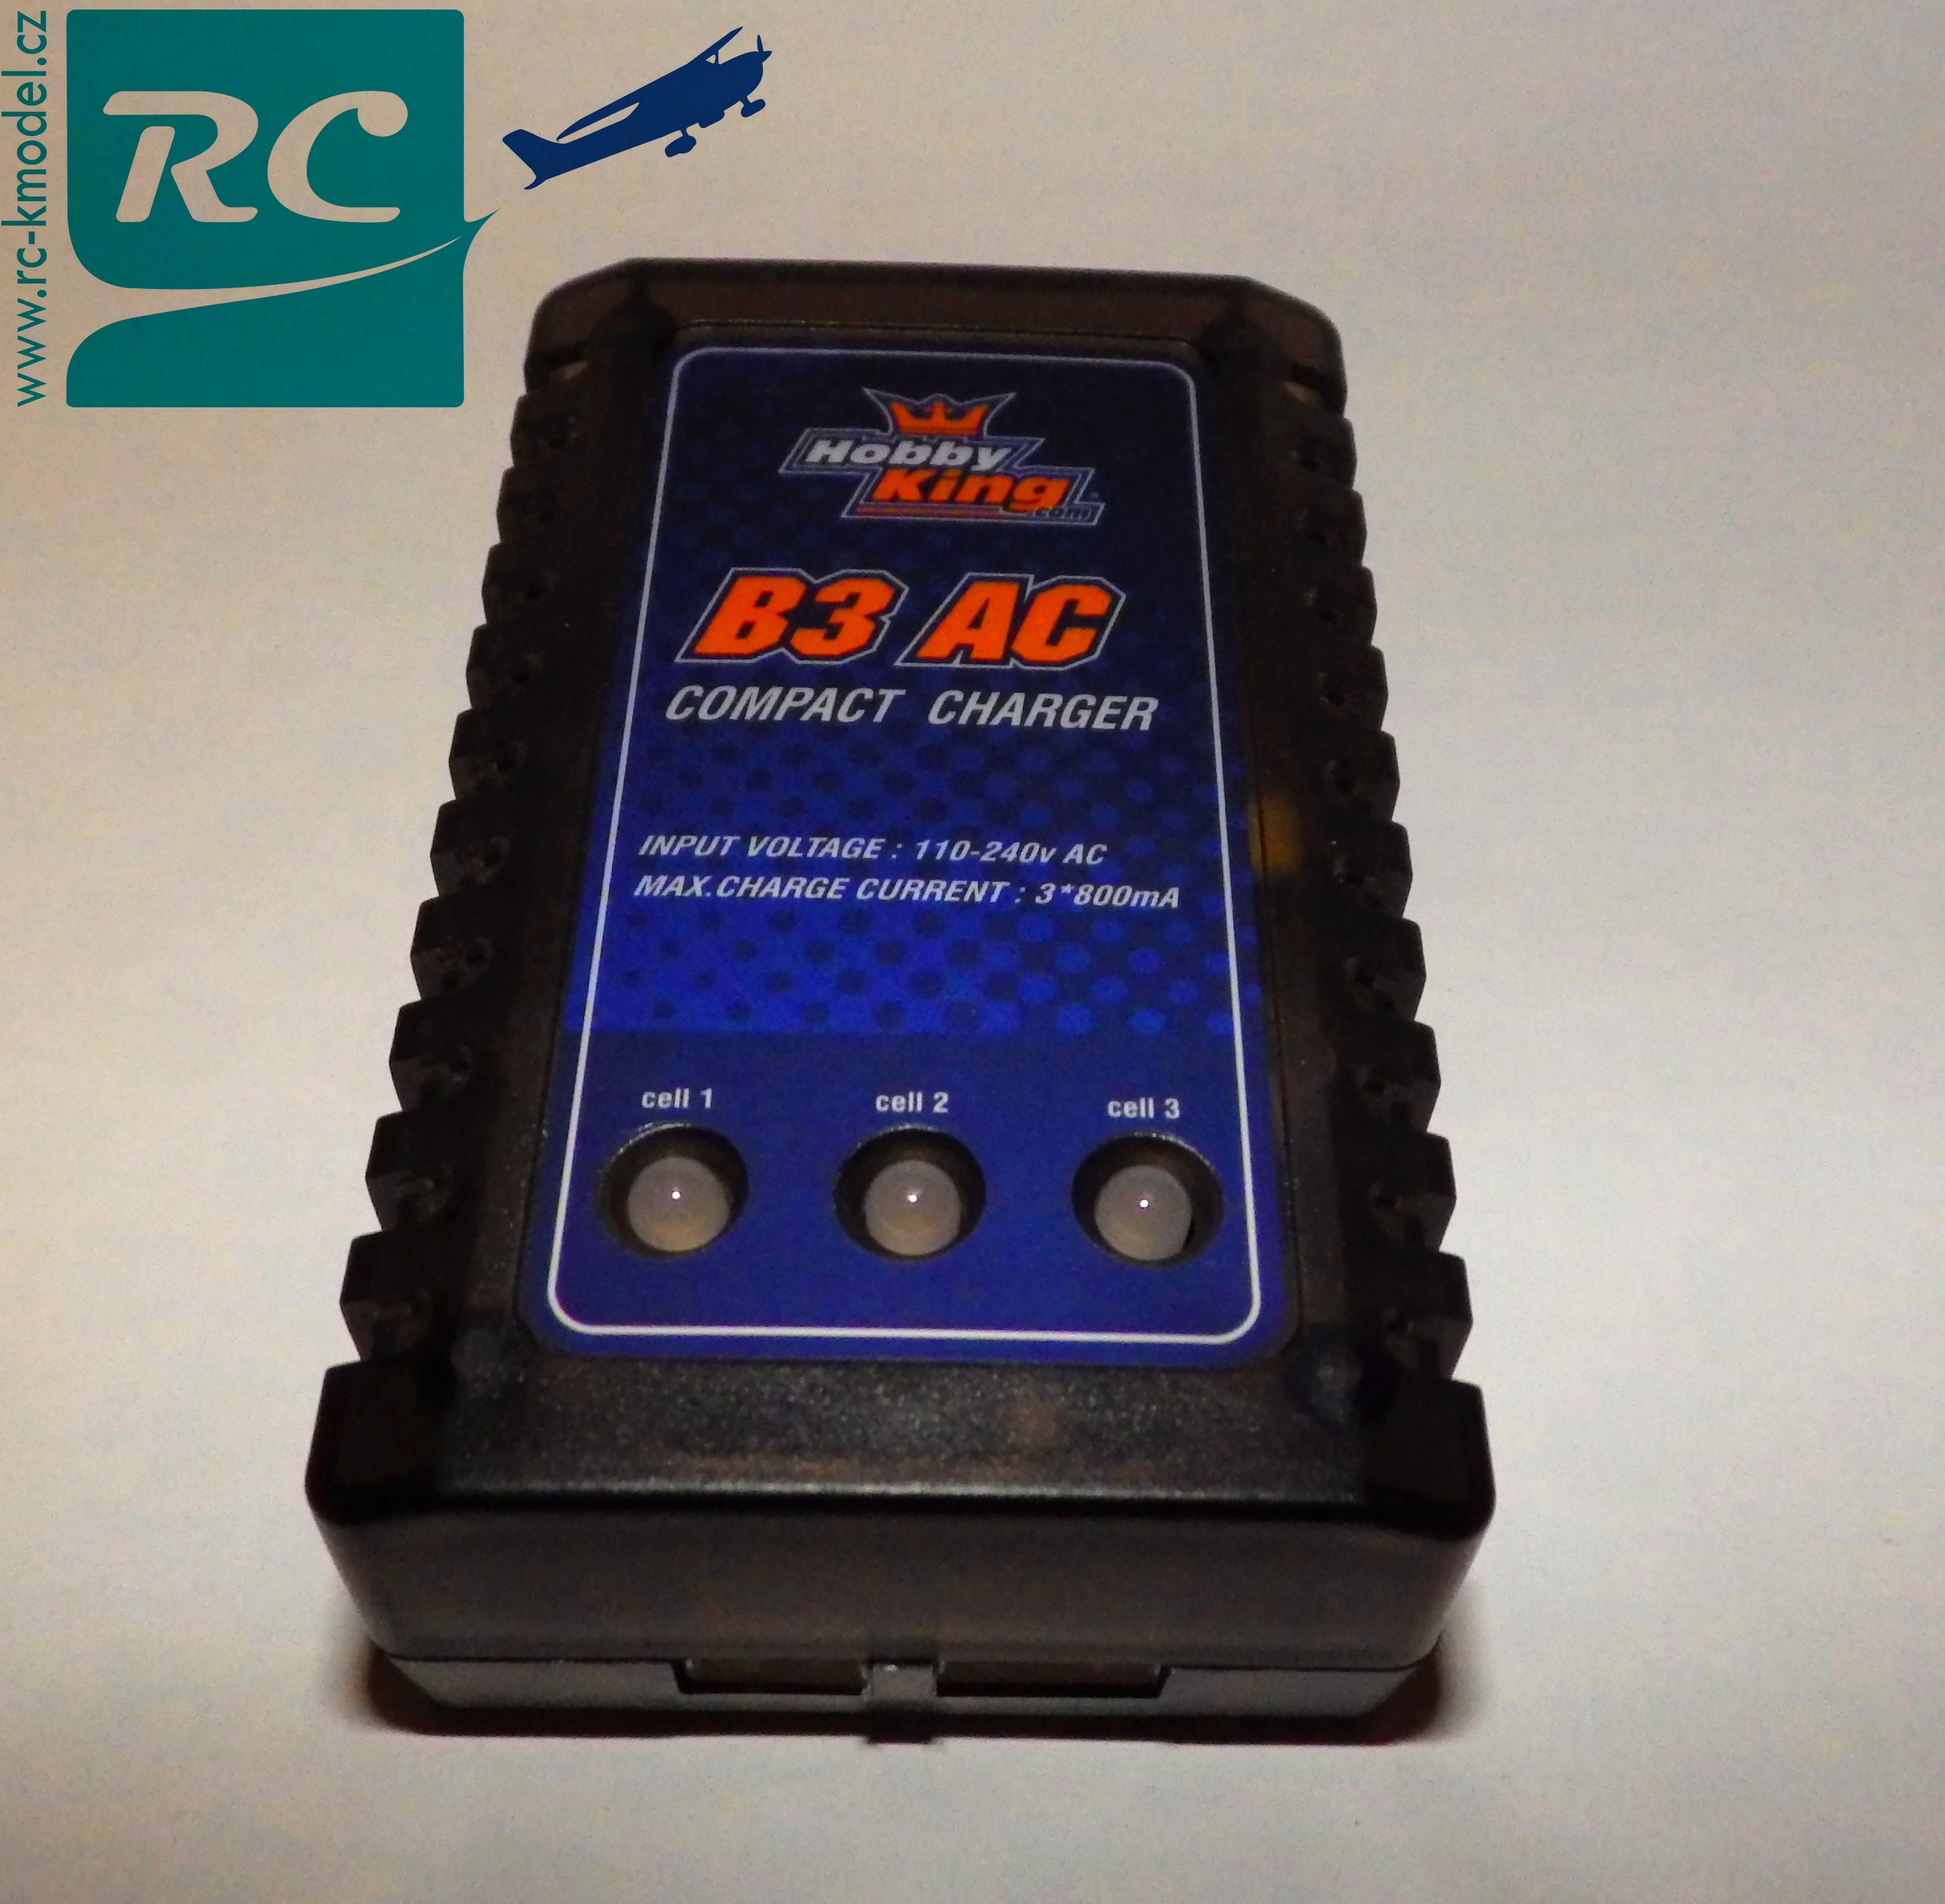 HobbyKing B3AC Compact Charger